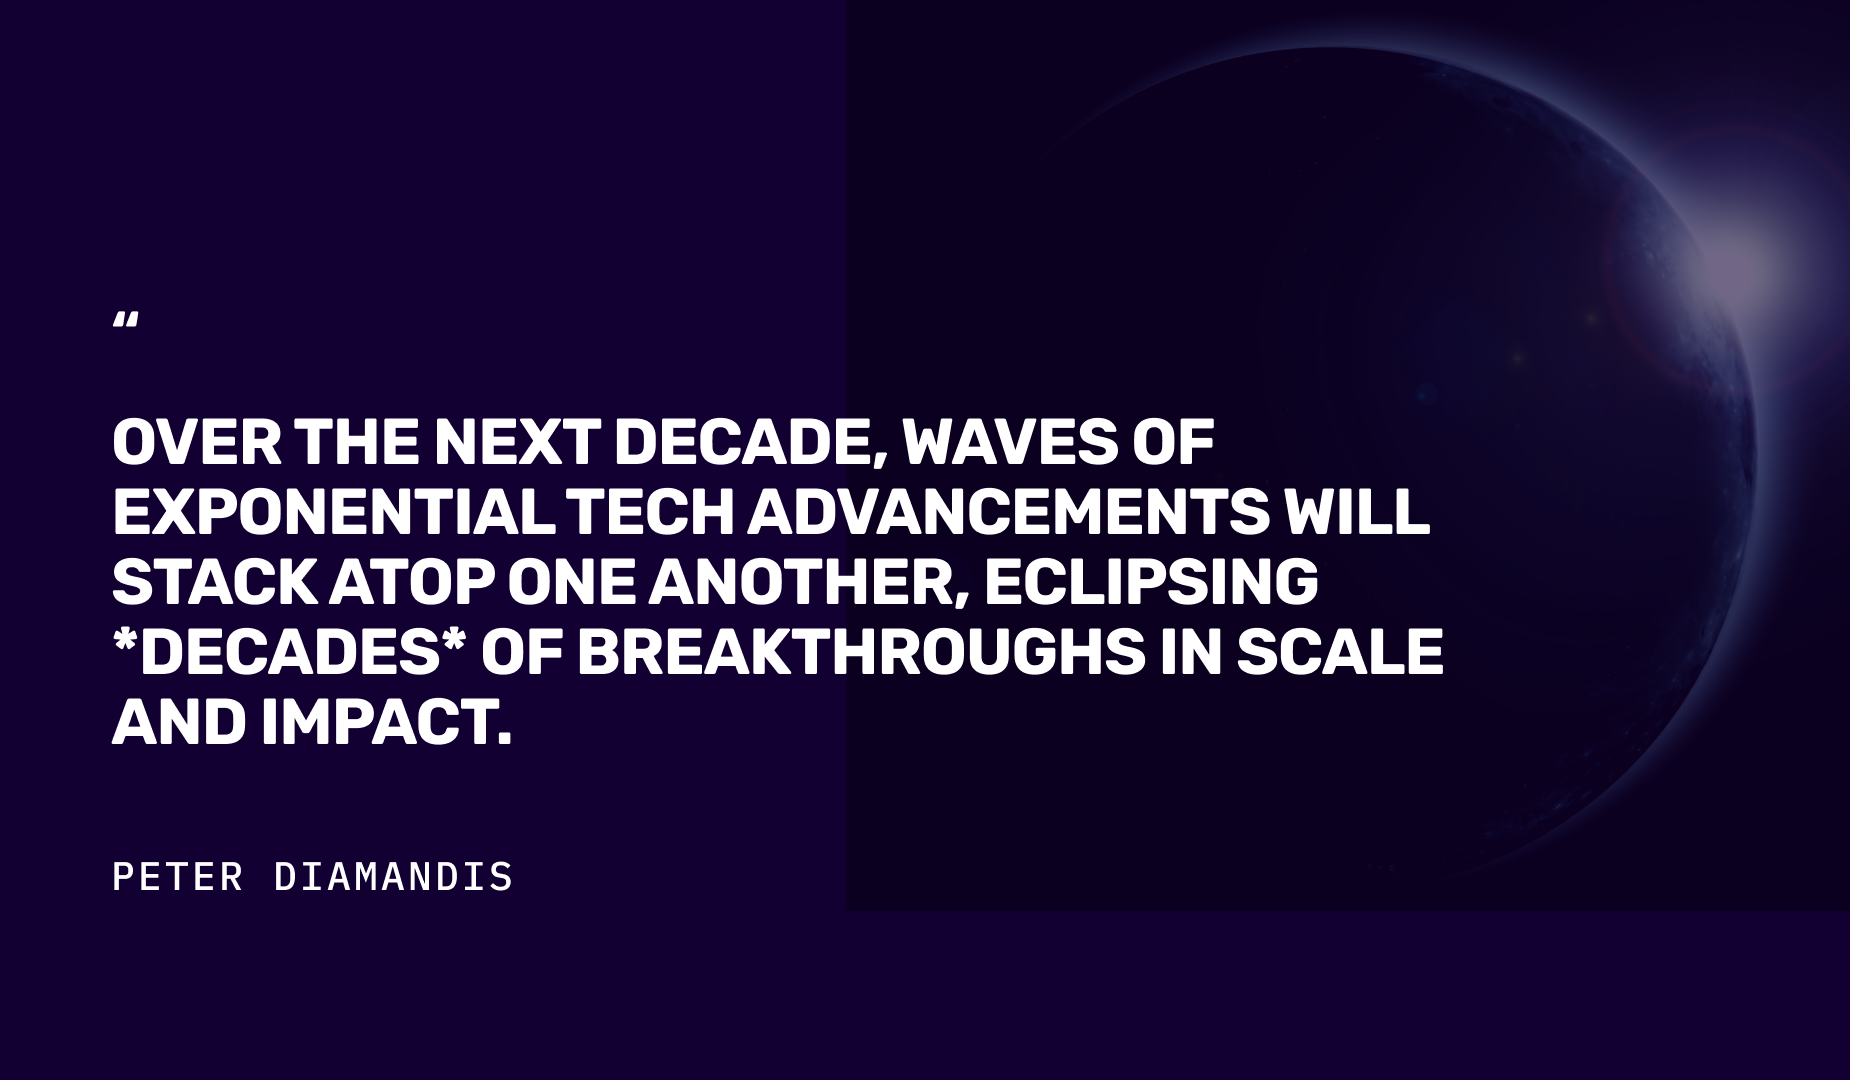 Peter Diamandis quote about waves of exponential tech advancements in the decade ahead